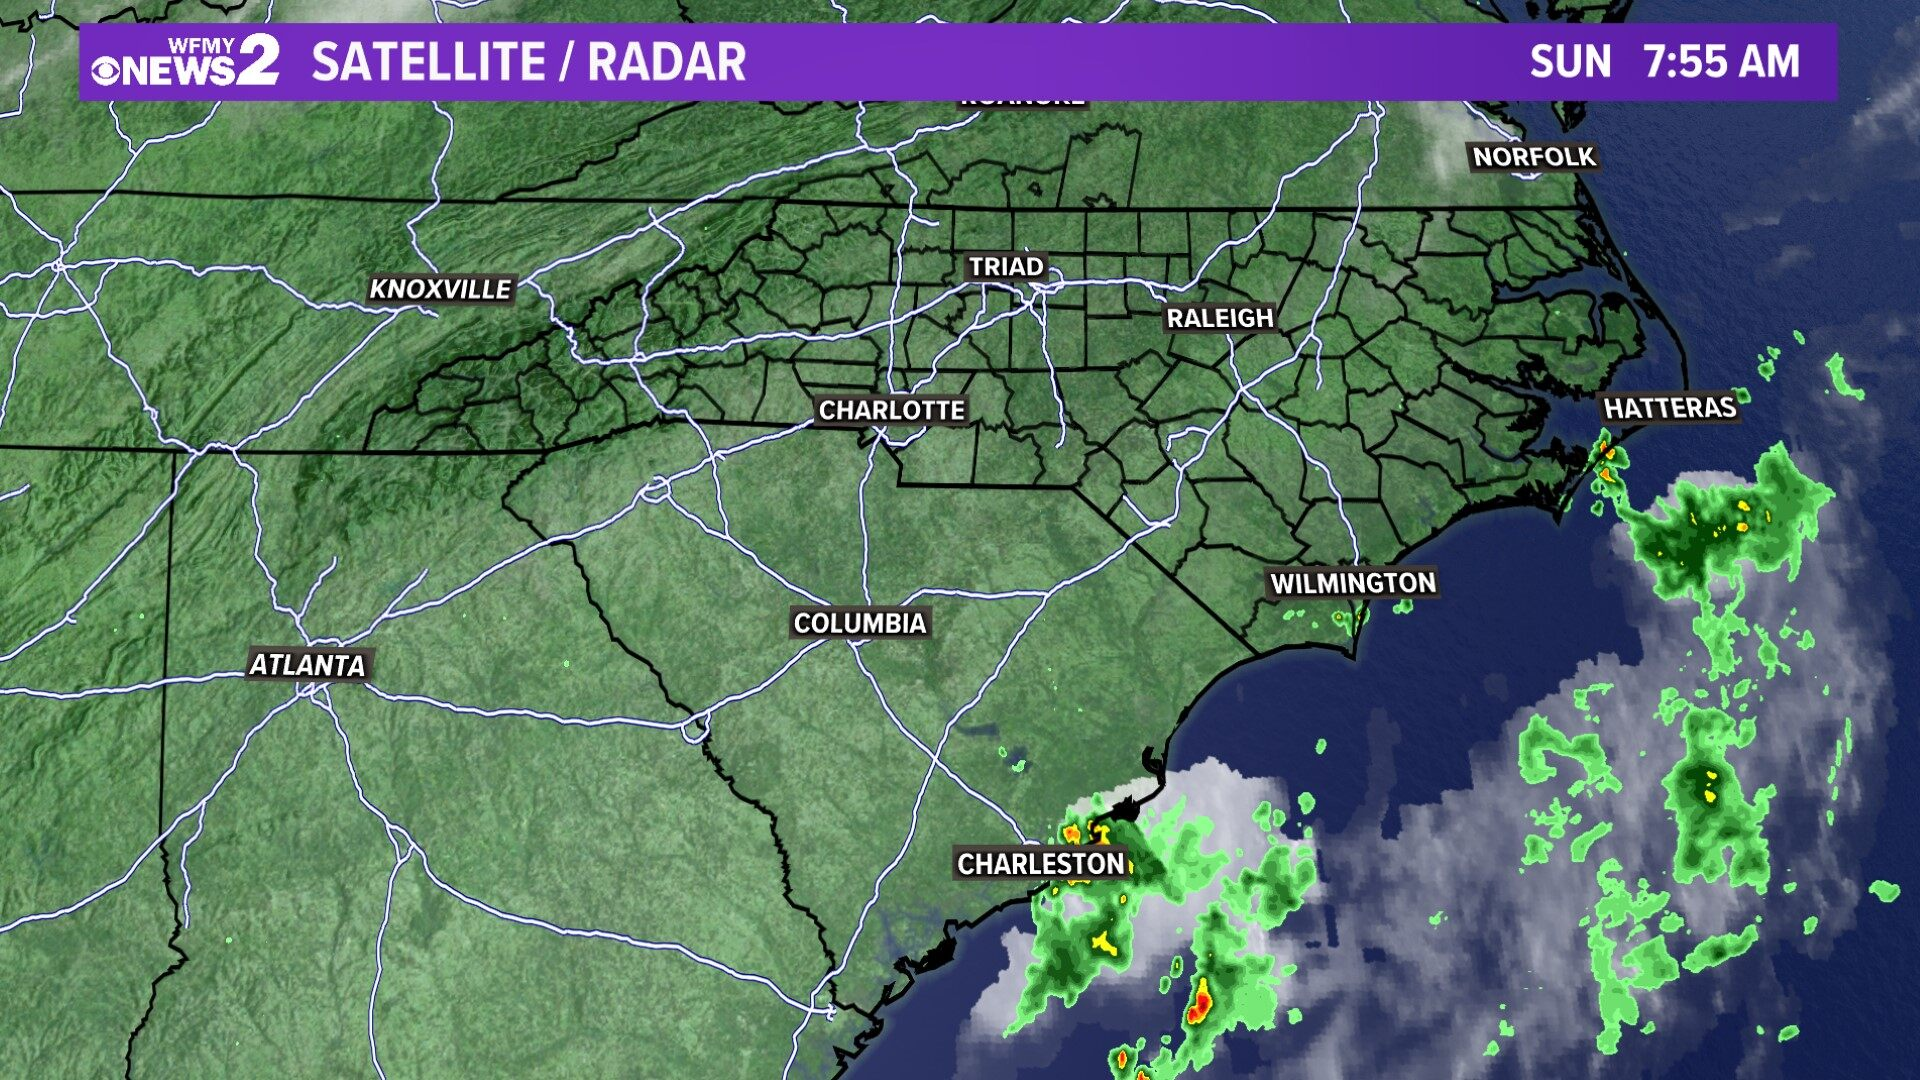 Carolinas Satellite and Radar